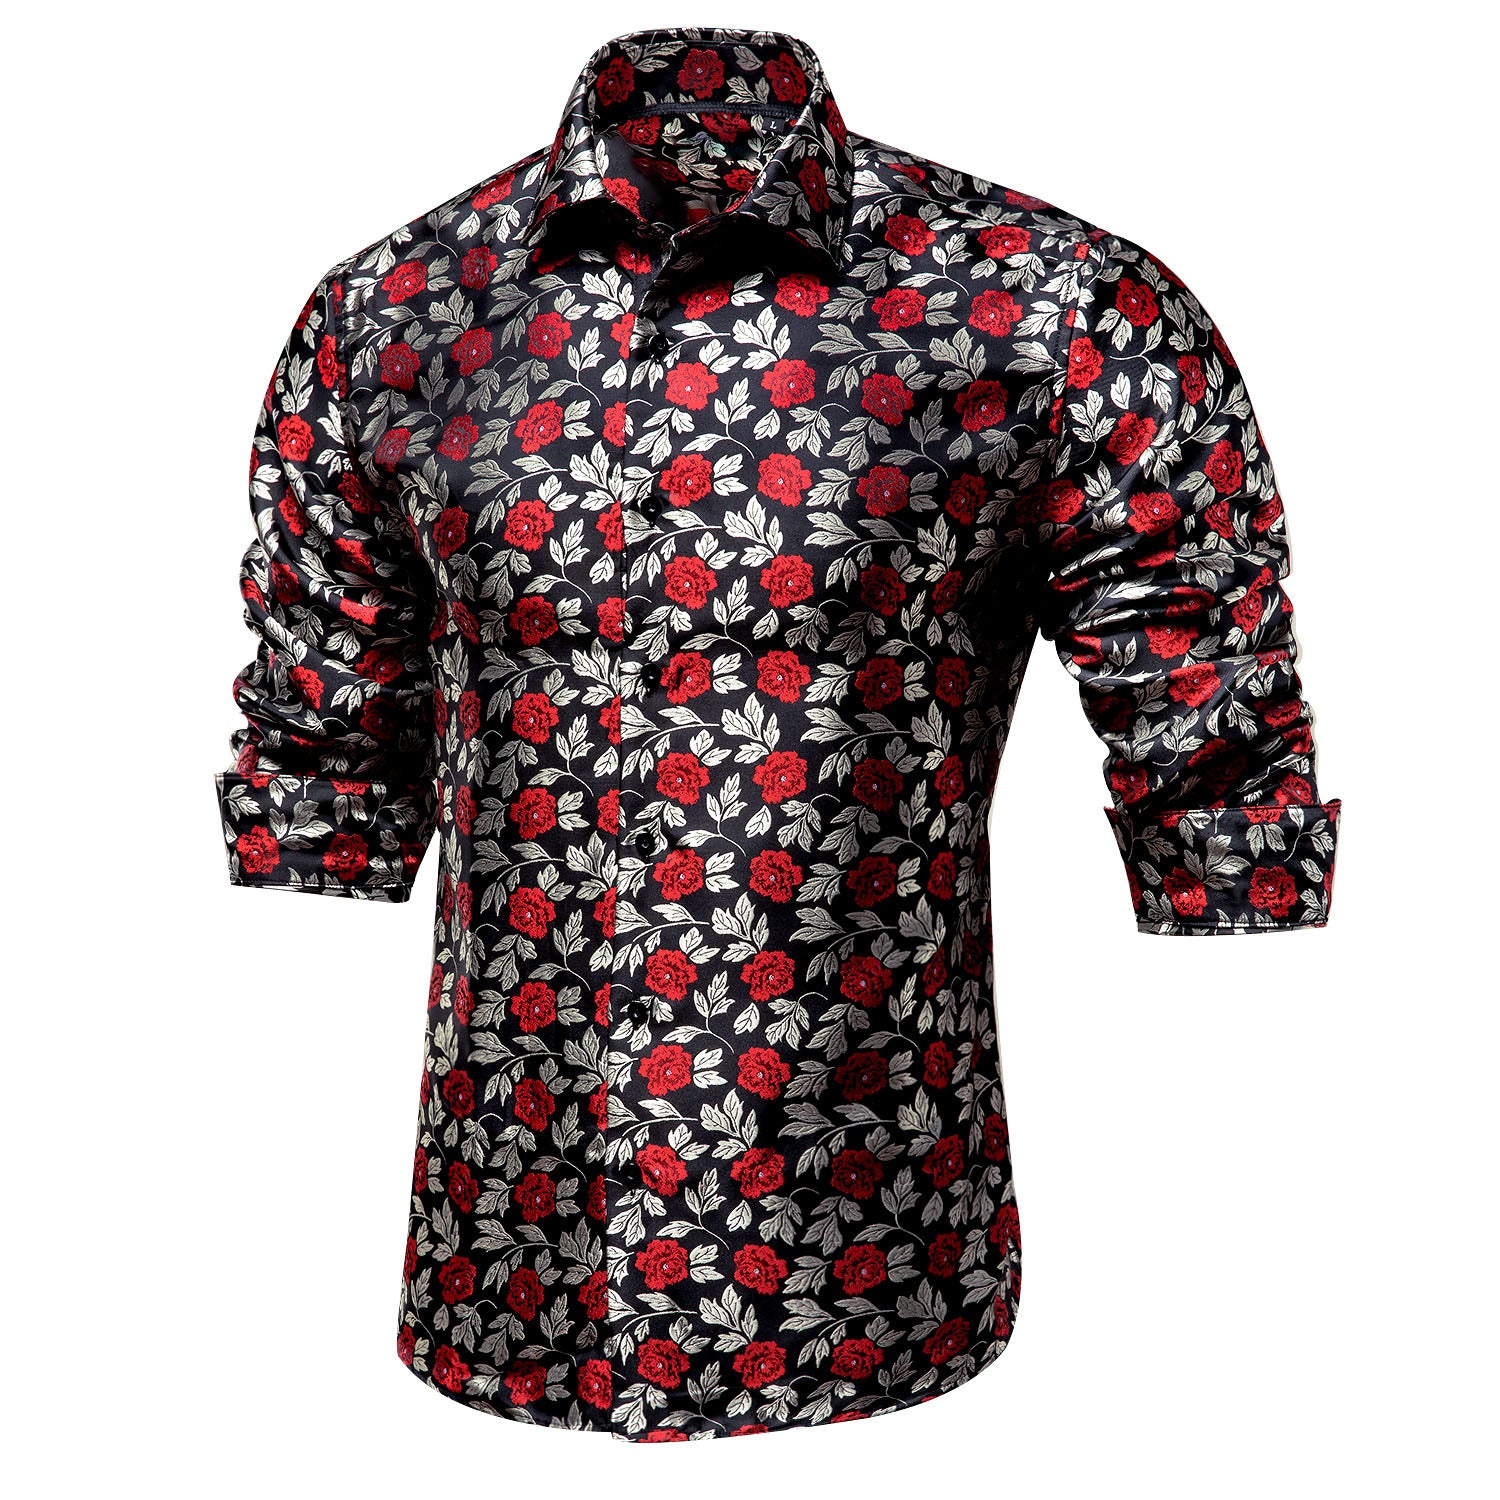 Ties2you New Black Red Floral Silk Men's Long Sleeve Shirt